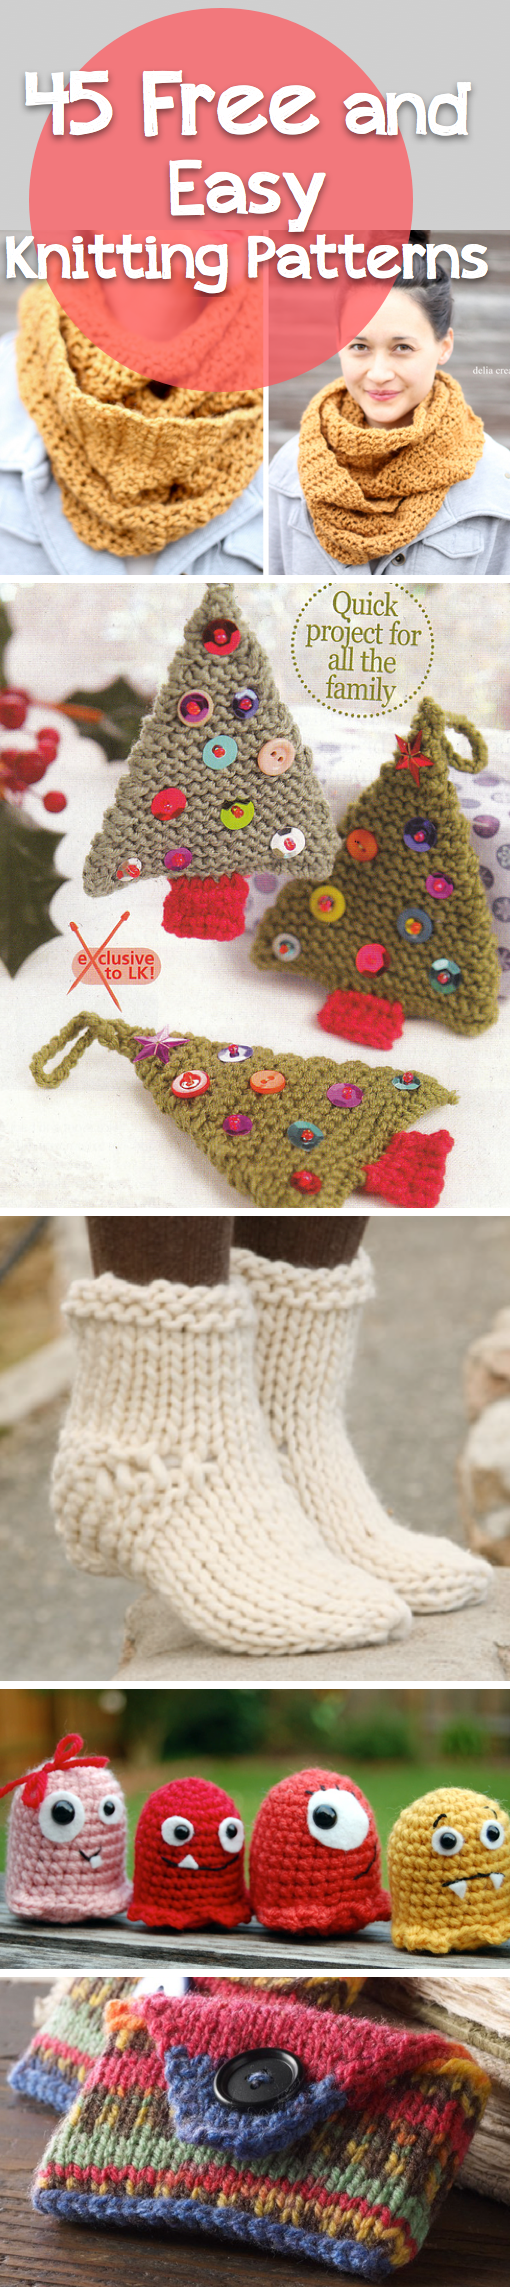 How to Knit – 45 Free and Easy Knitting Patterns. I want to knit ...